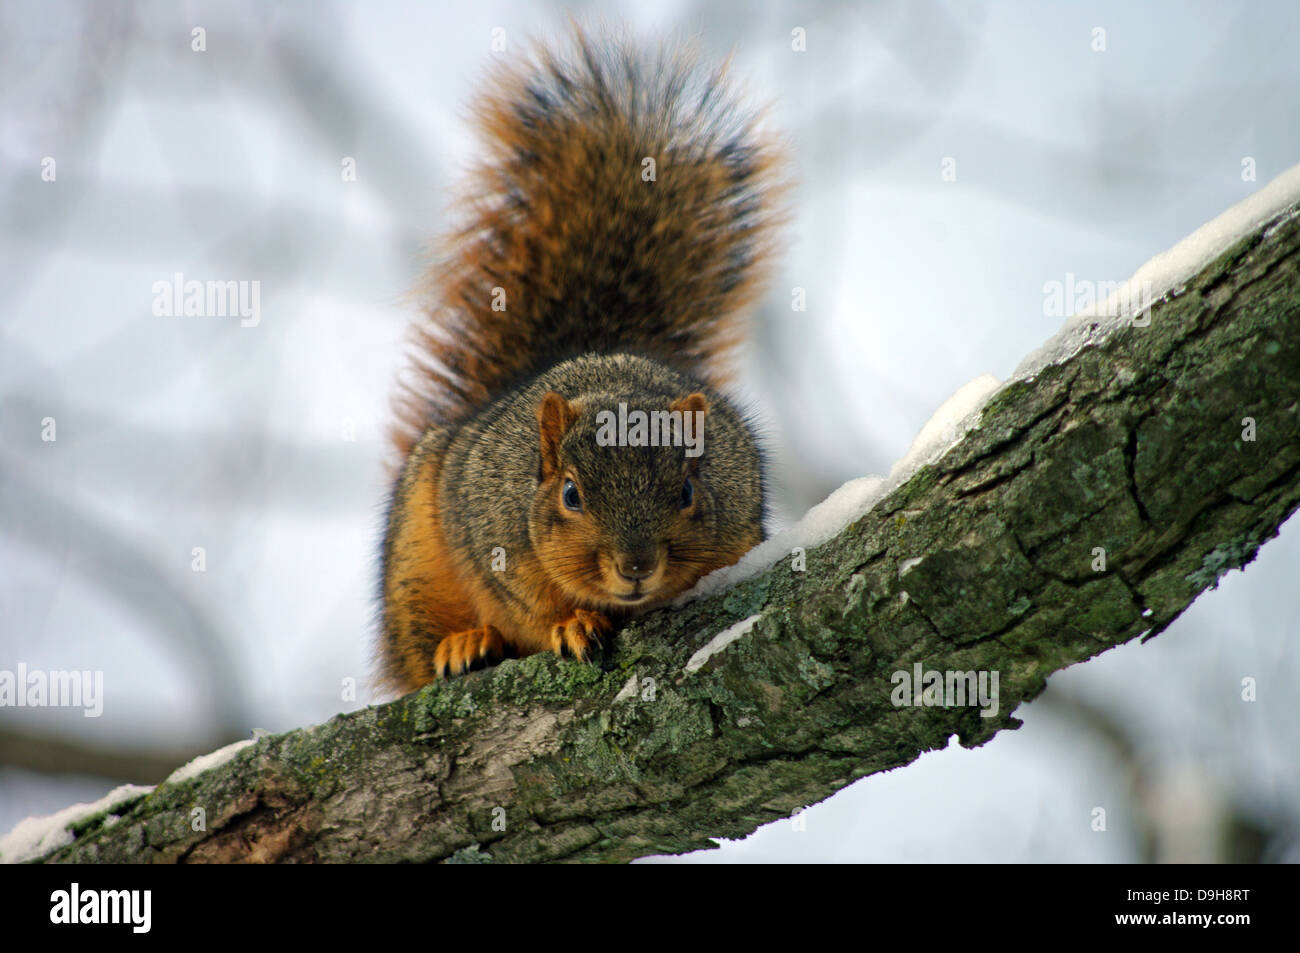 Charming Charlie the Eastern Red Fox Squirrel barking at the